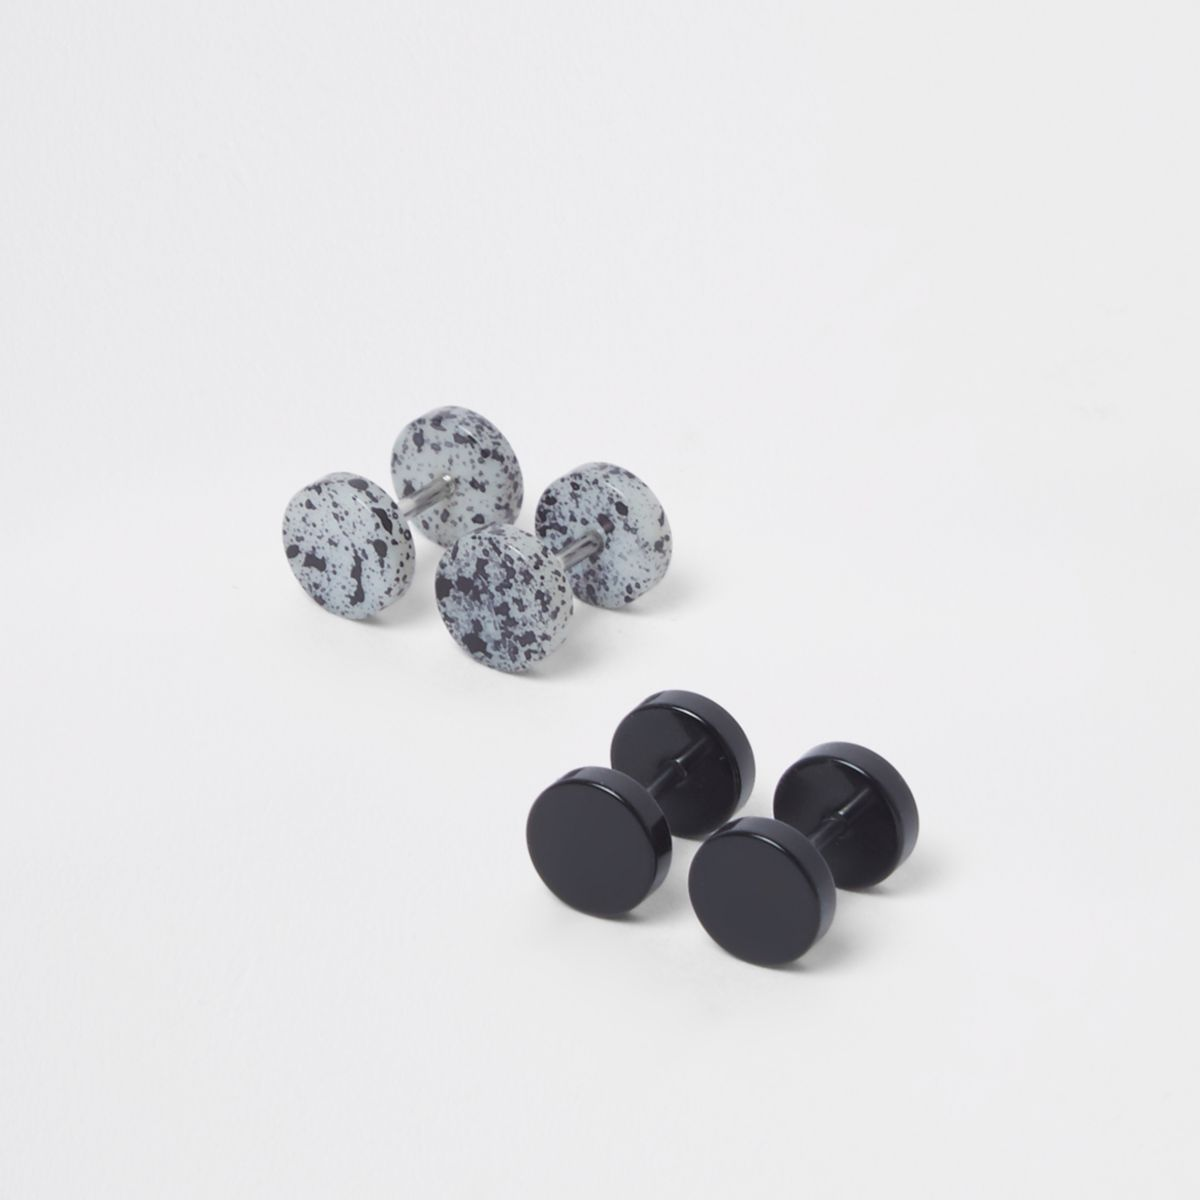 Black marble ear plugs pack